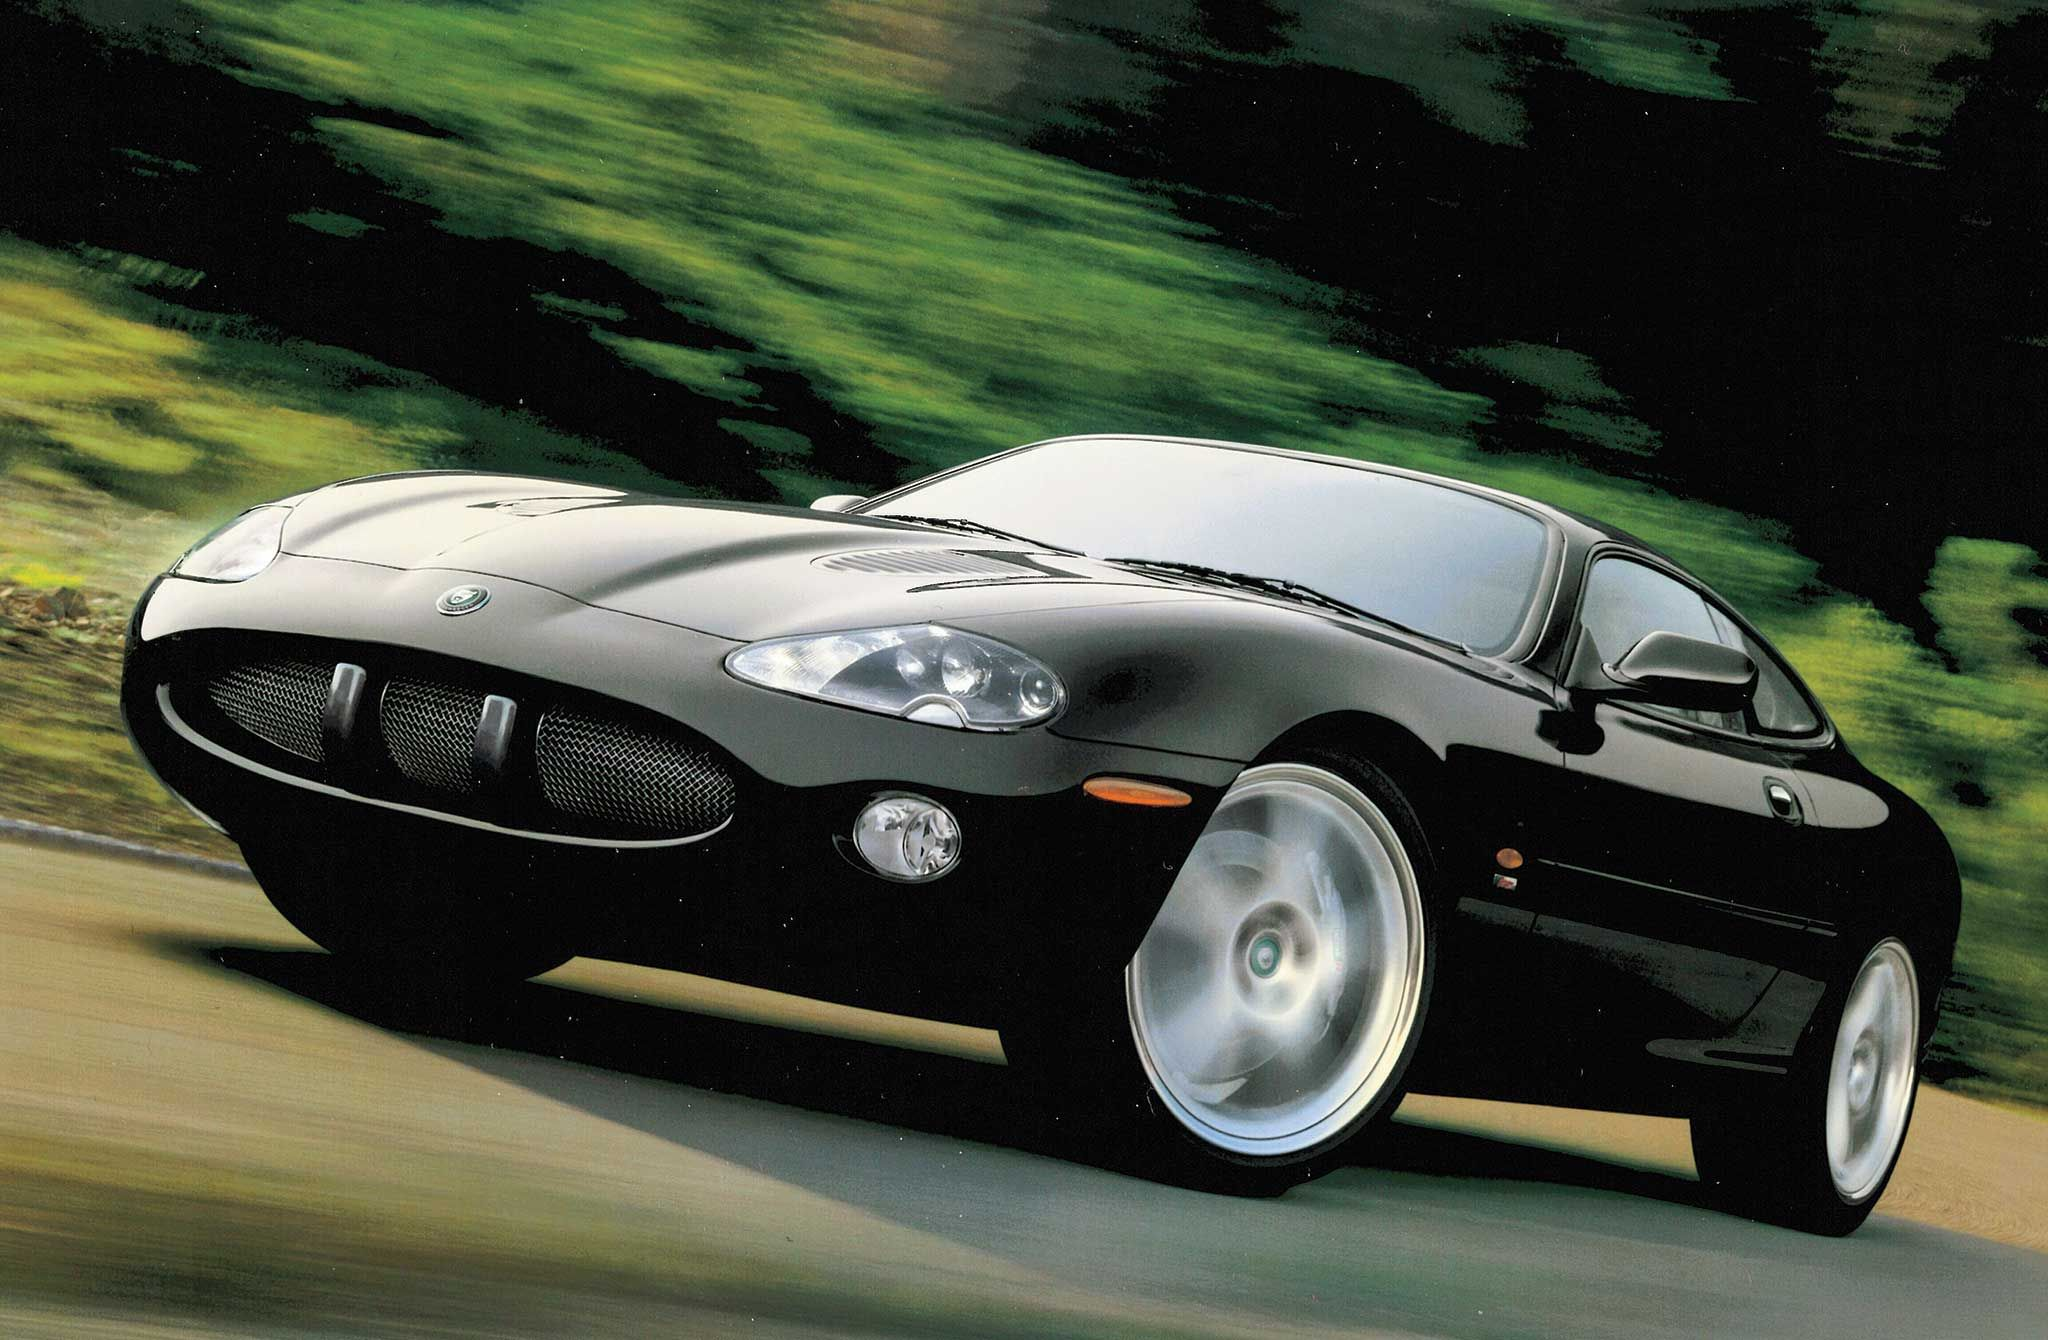 Jaguar XK8 Used Engines